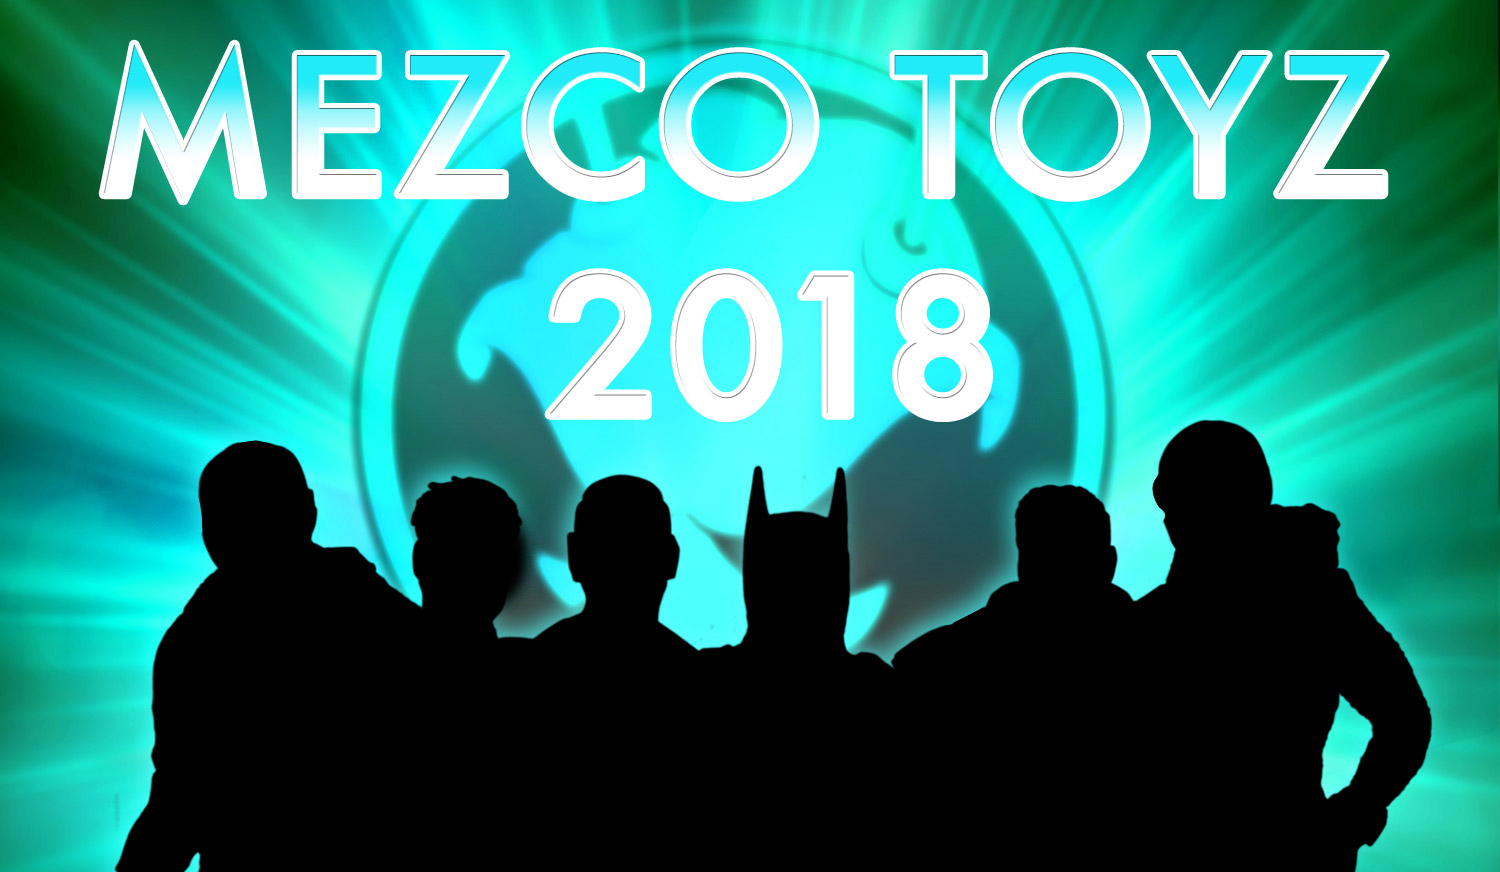 mezco-toy-fair-2018-teasers